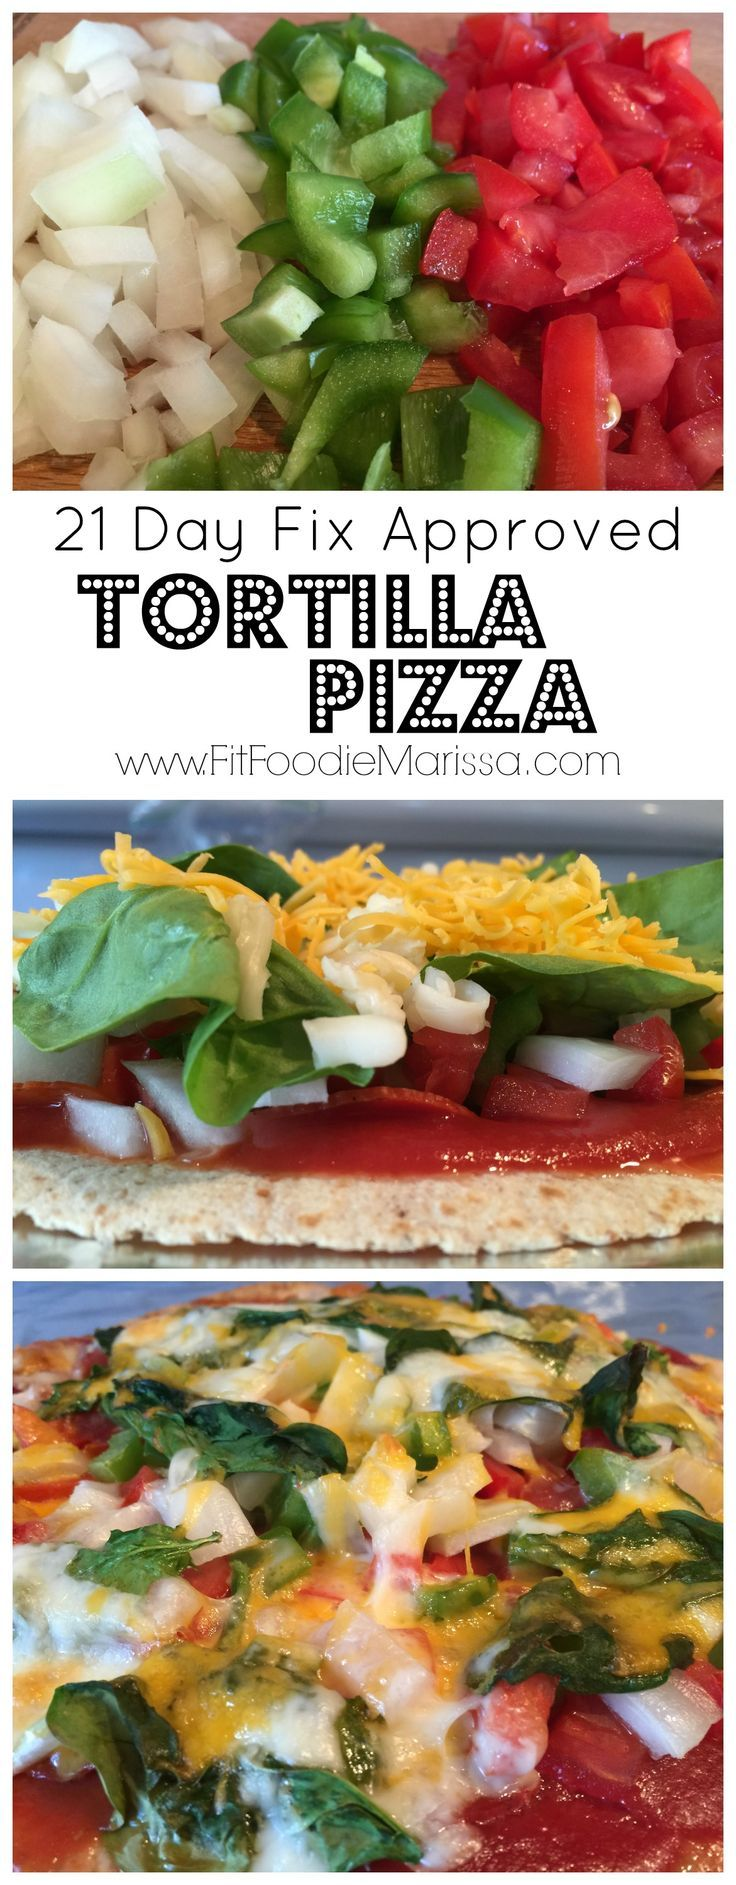 Simple and delicious 21 Day Fix approved tortilla pizza. This is one recipe you won't regret trying! http://www.fitfoodiemarissa.com